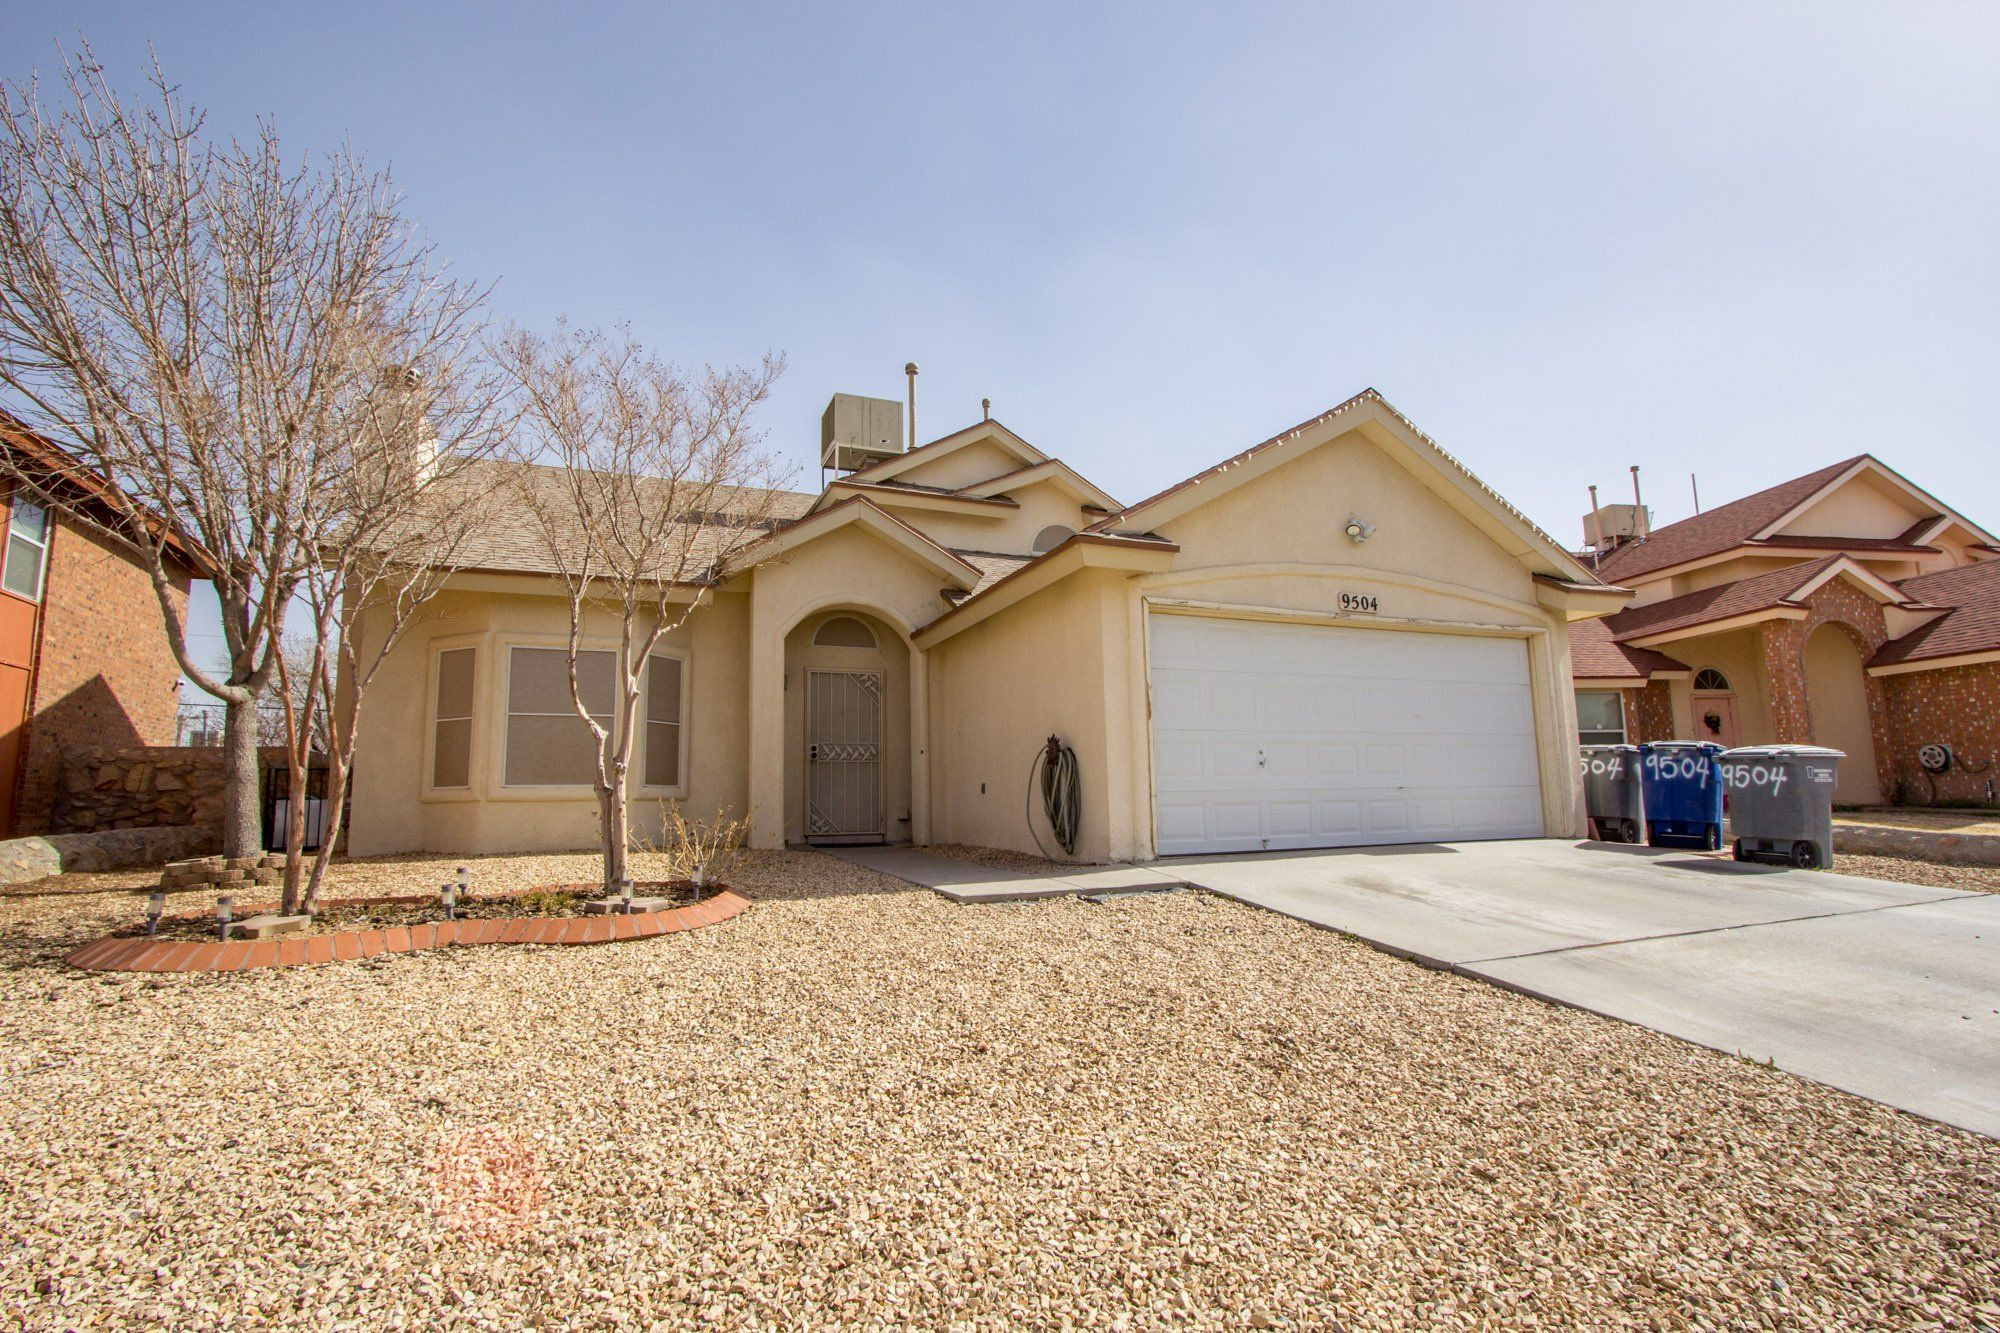 El Paso Texas Houses Google Search Renting A House House